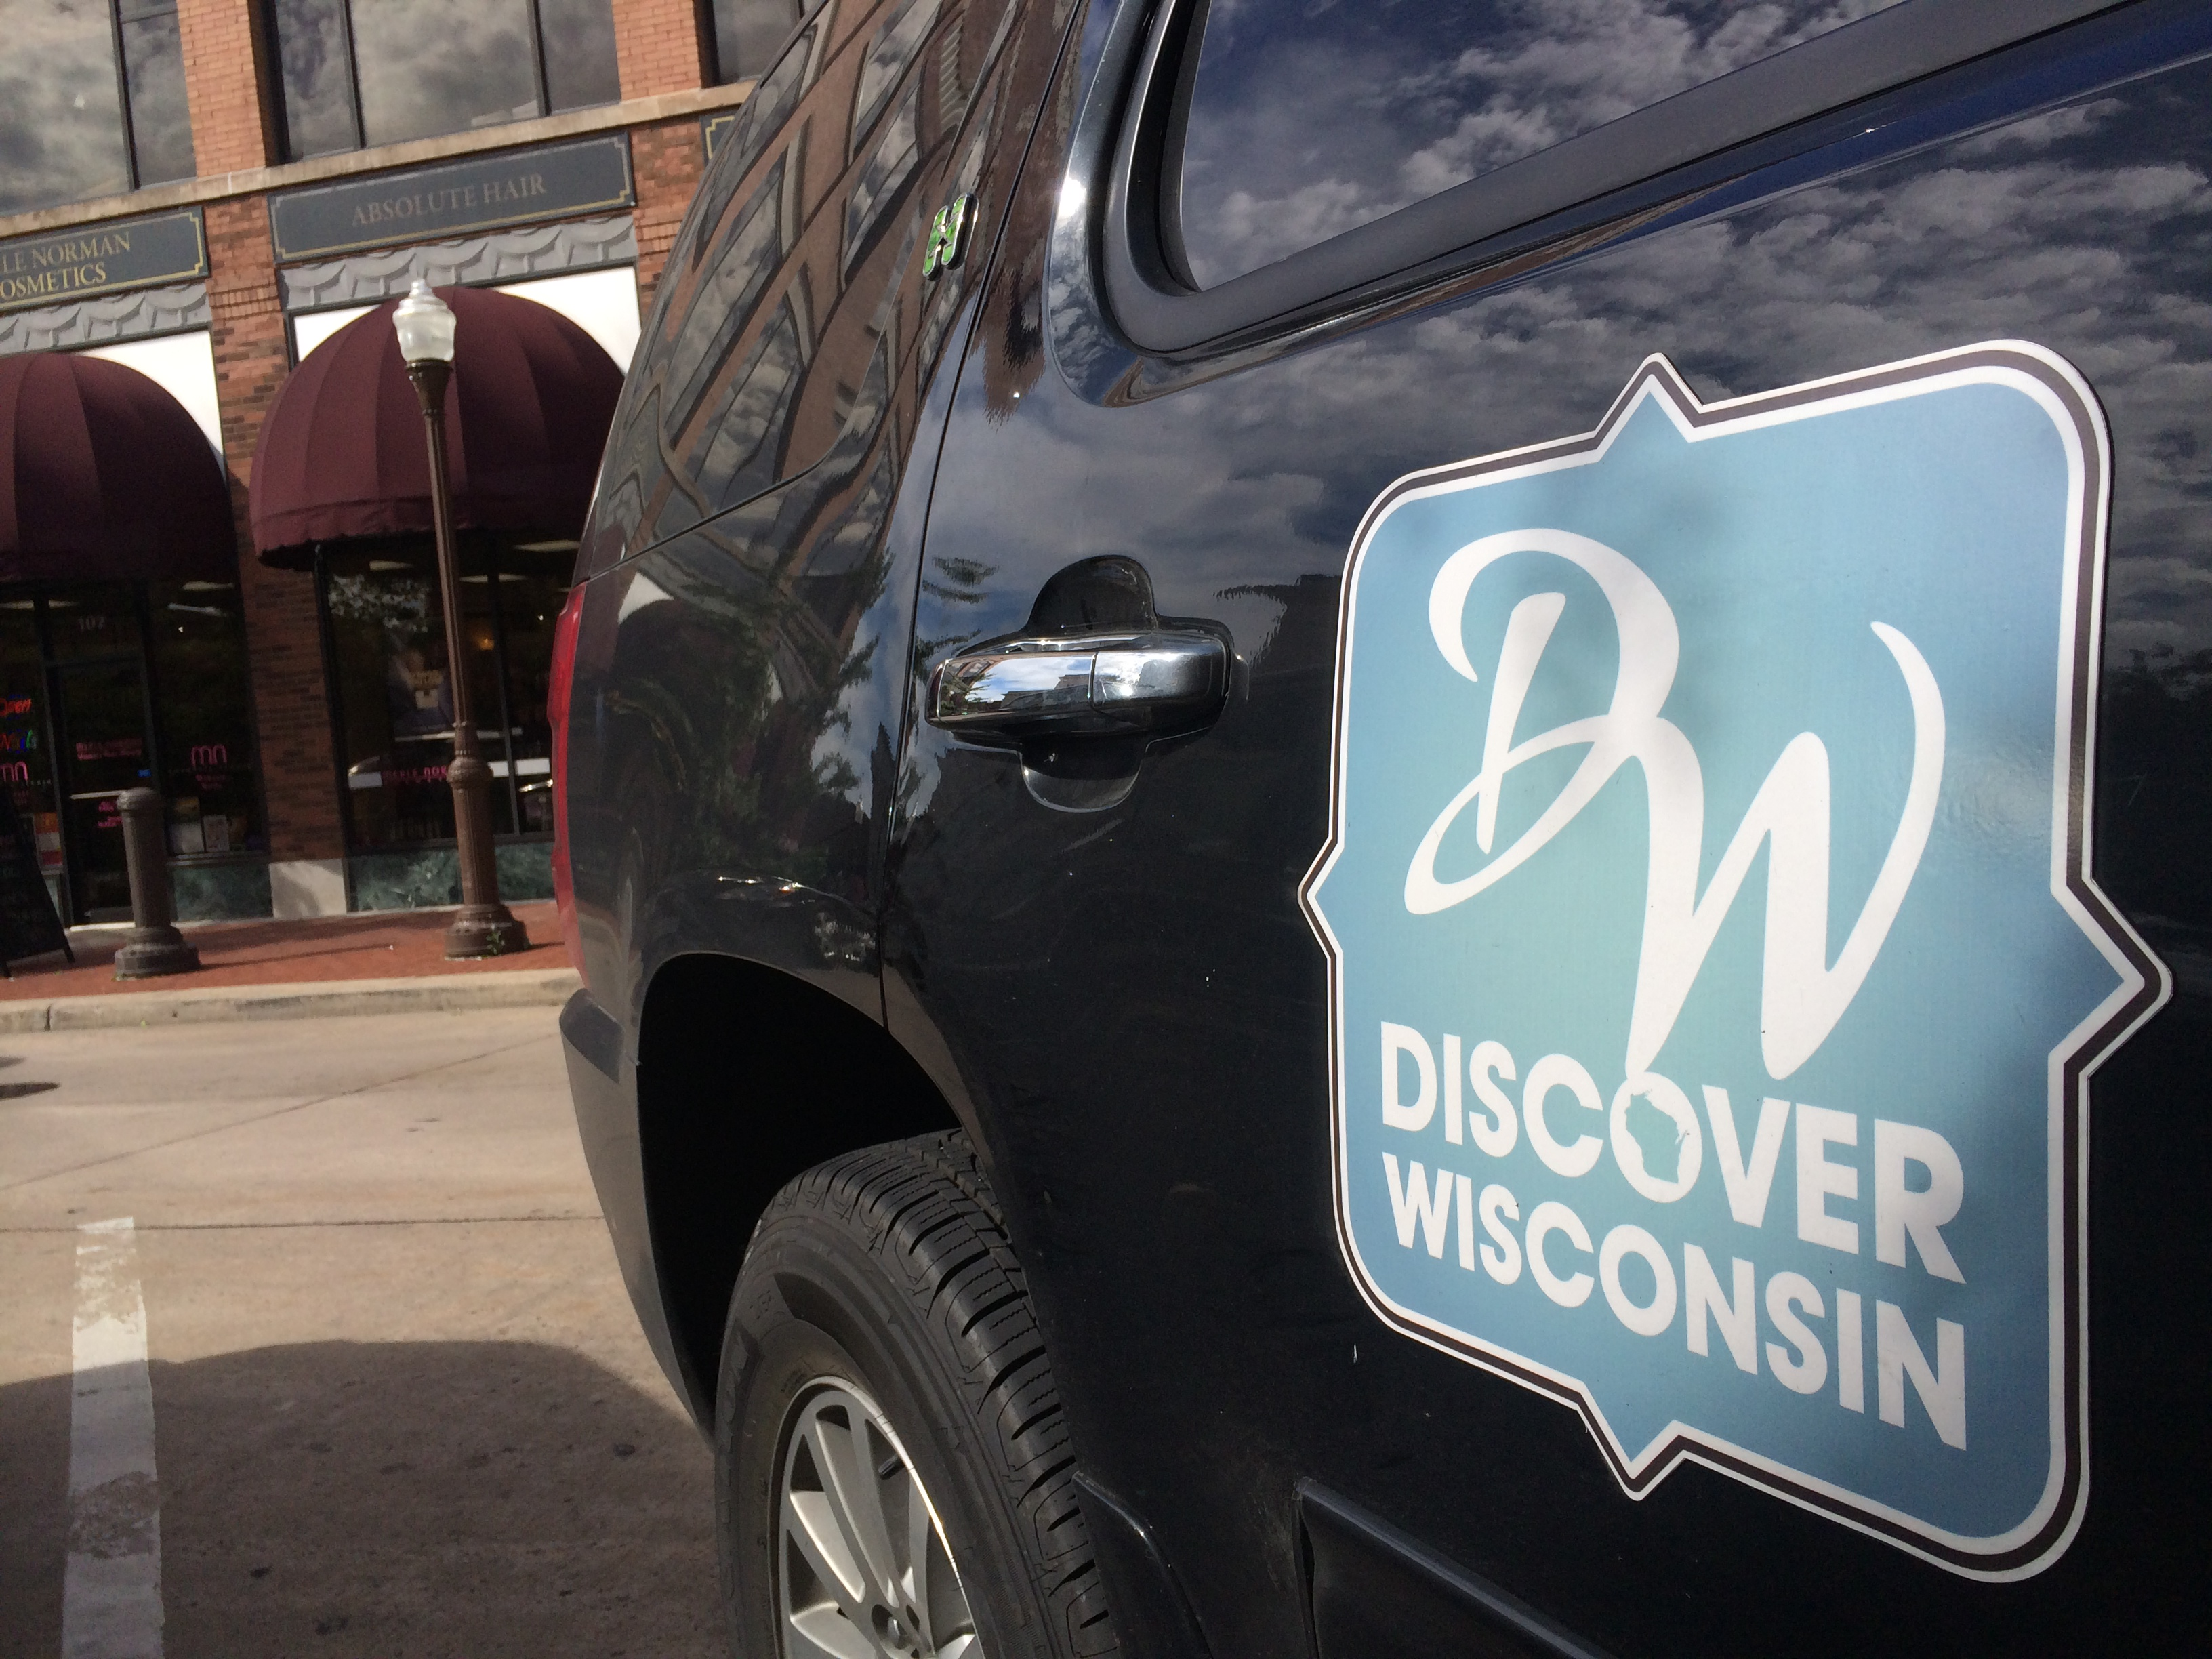 30 Days on the Road with Discover Wisconsin